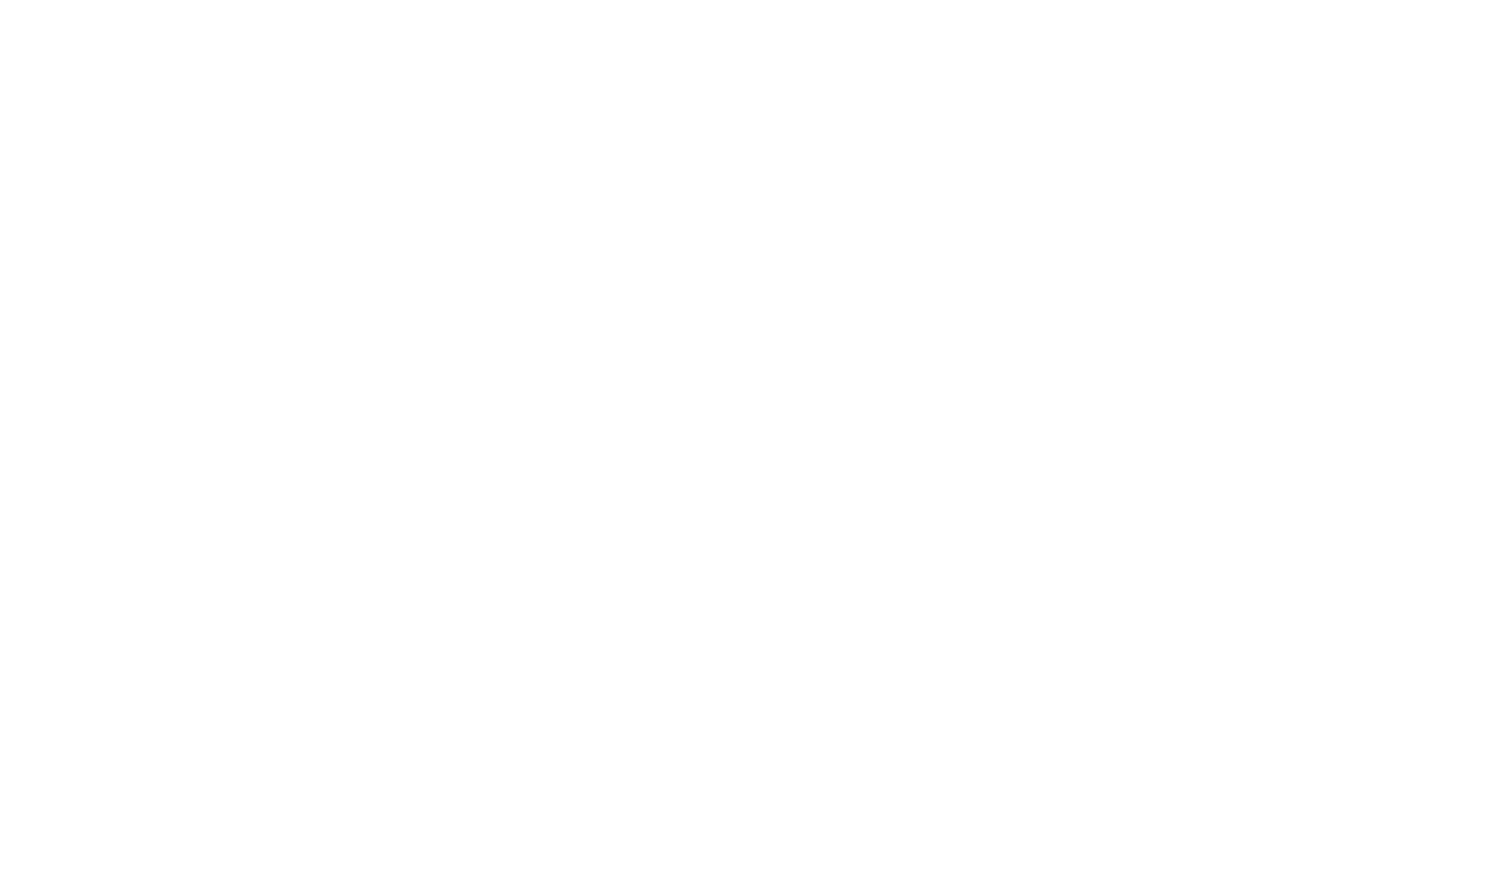 Forgotten Coast Collective